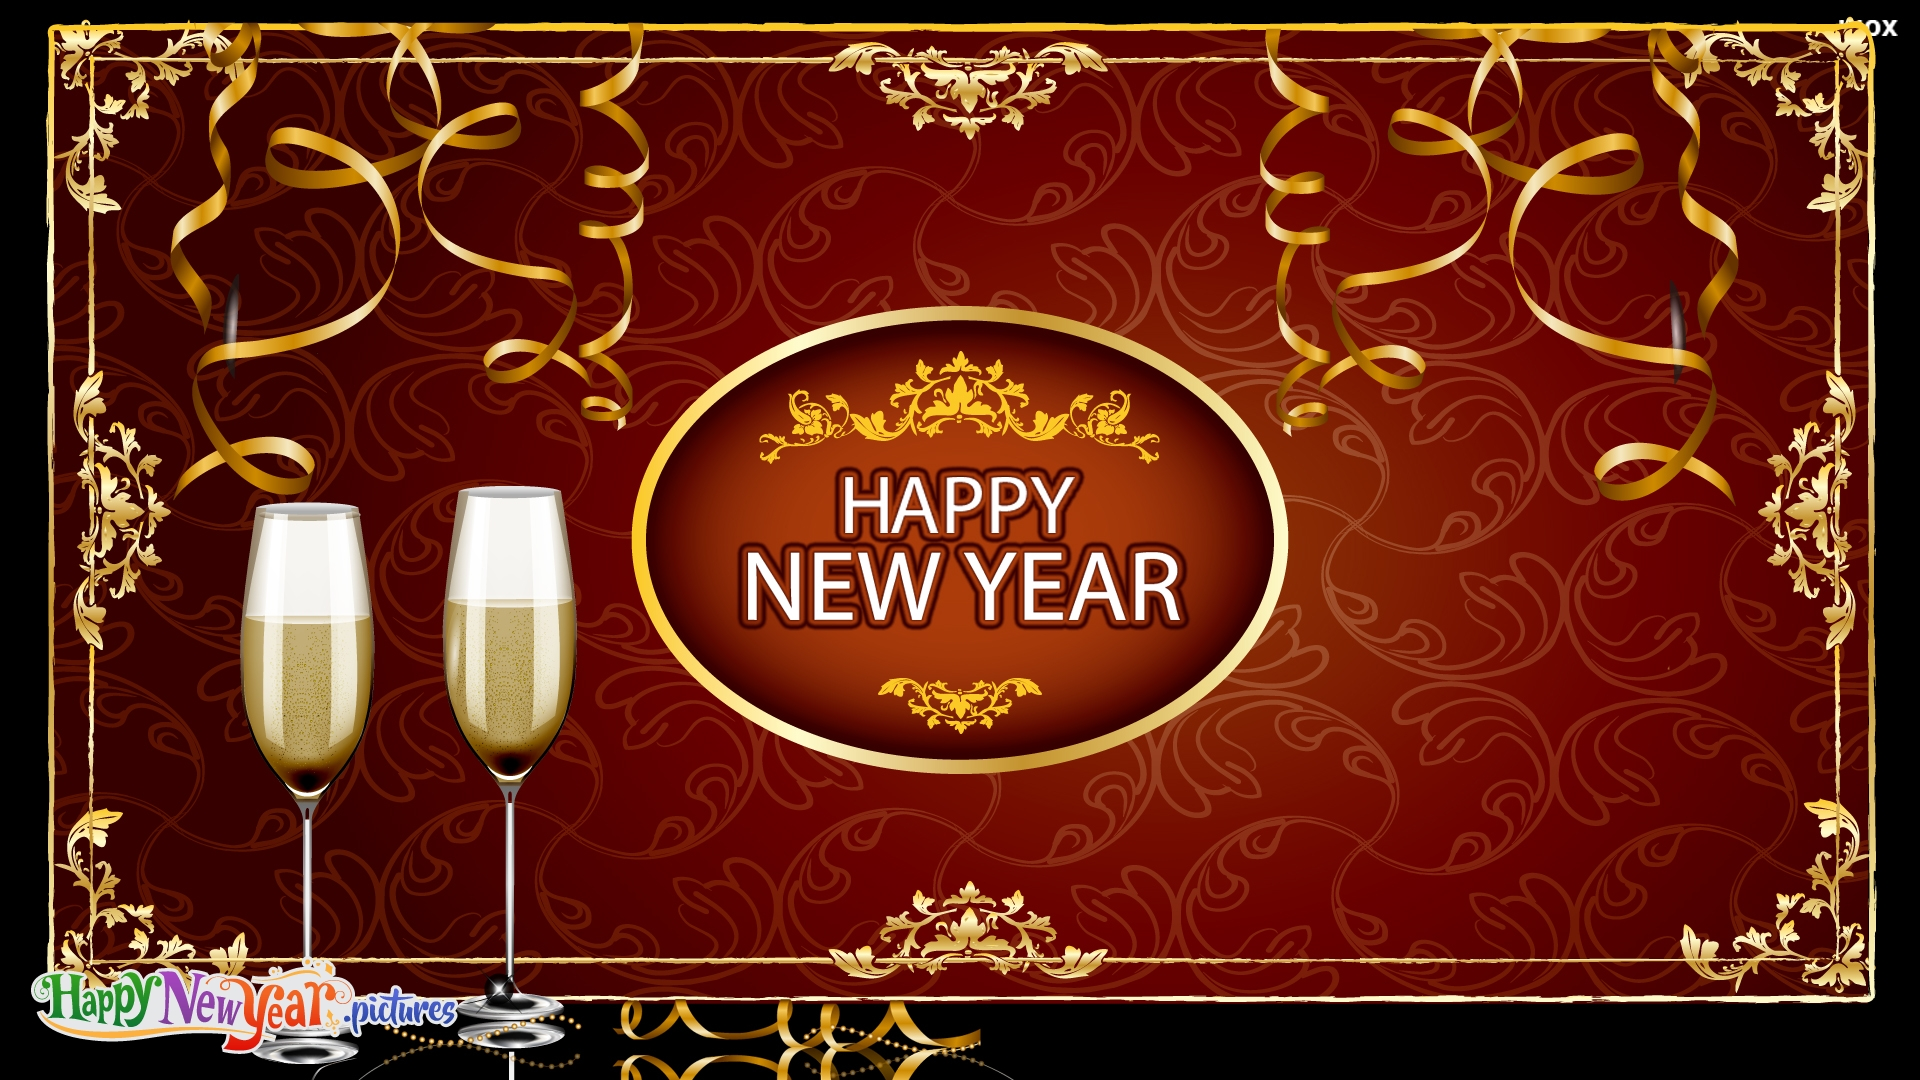 My Hearty Happy New Year 2020 Wishes